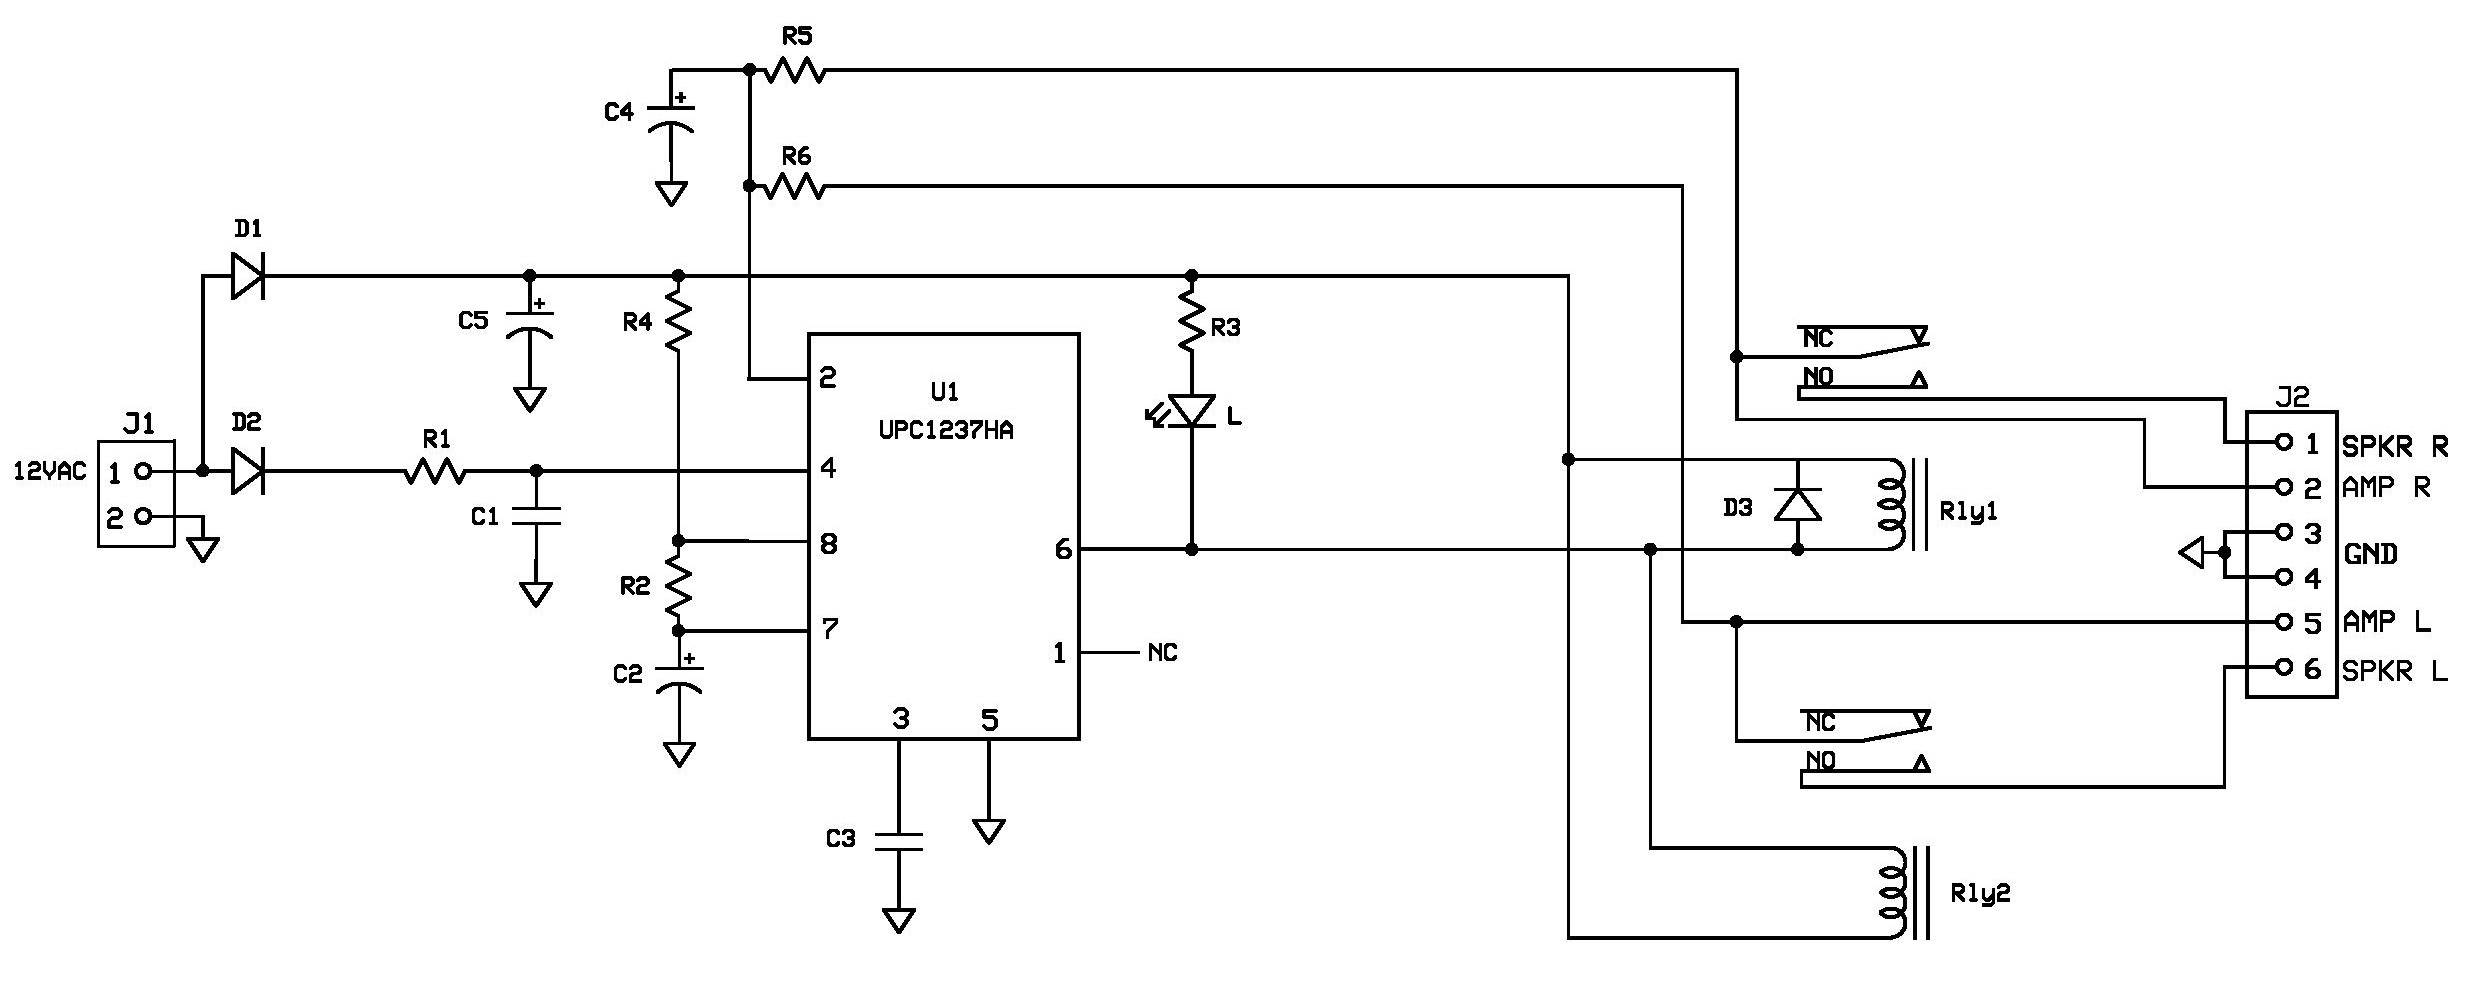 Other Audio Related Projects Buildaudioamps Circuit Diagram For Upc1237 Schematic Of Speaker Protection And Power On Delay Project